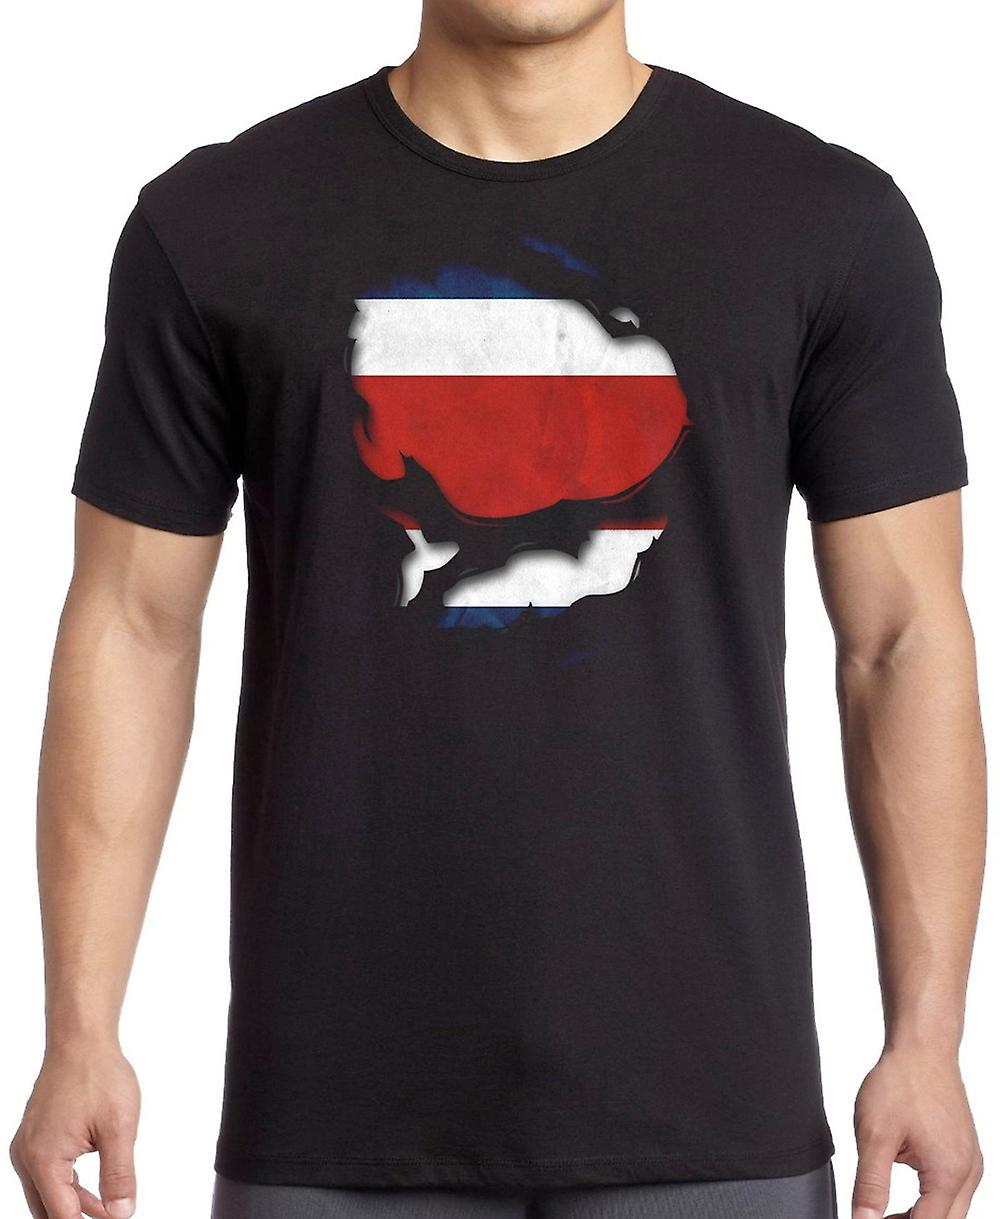 Dominikanska republiken slet effekt Under skjorta T Shirt